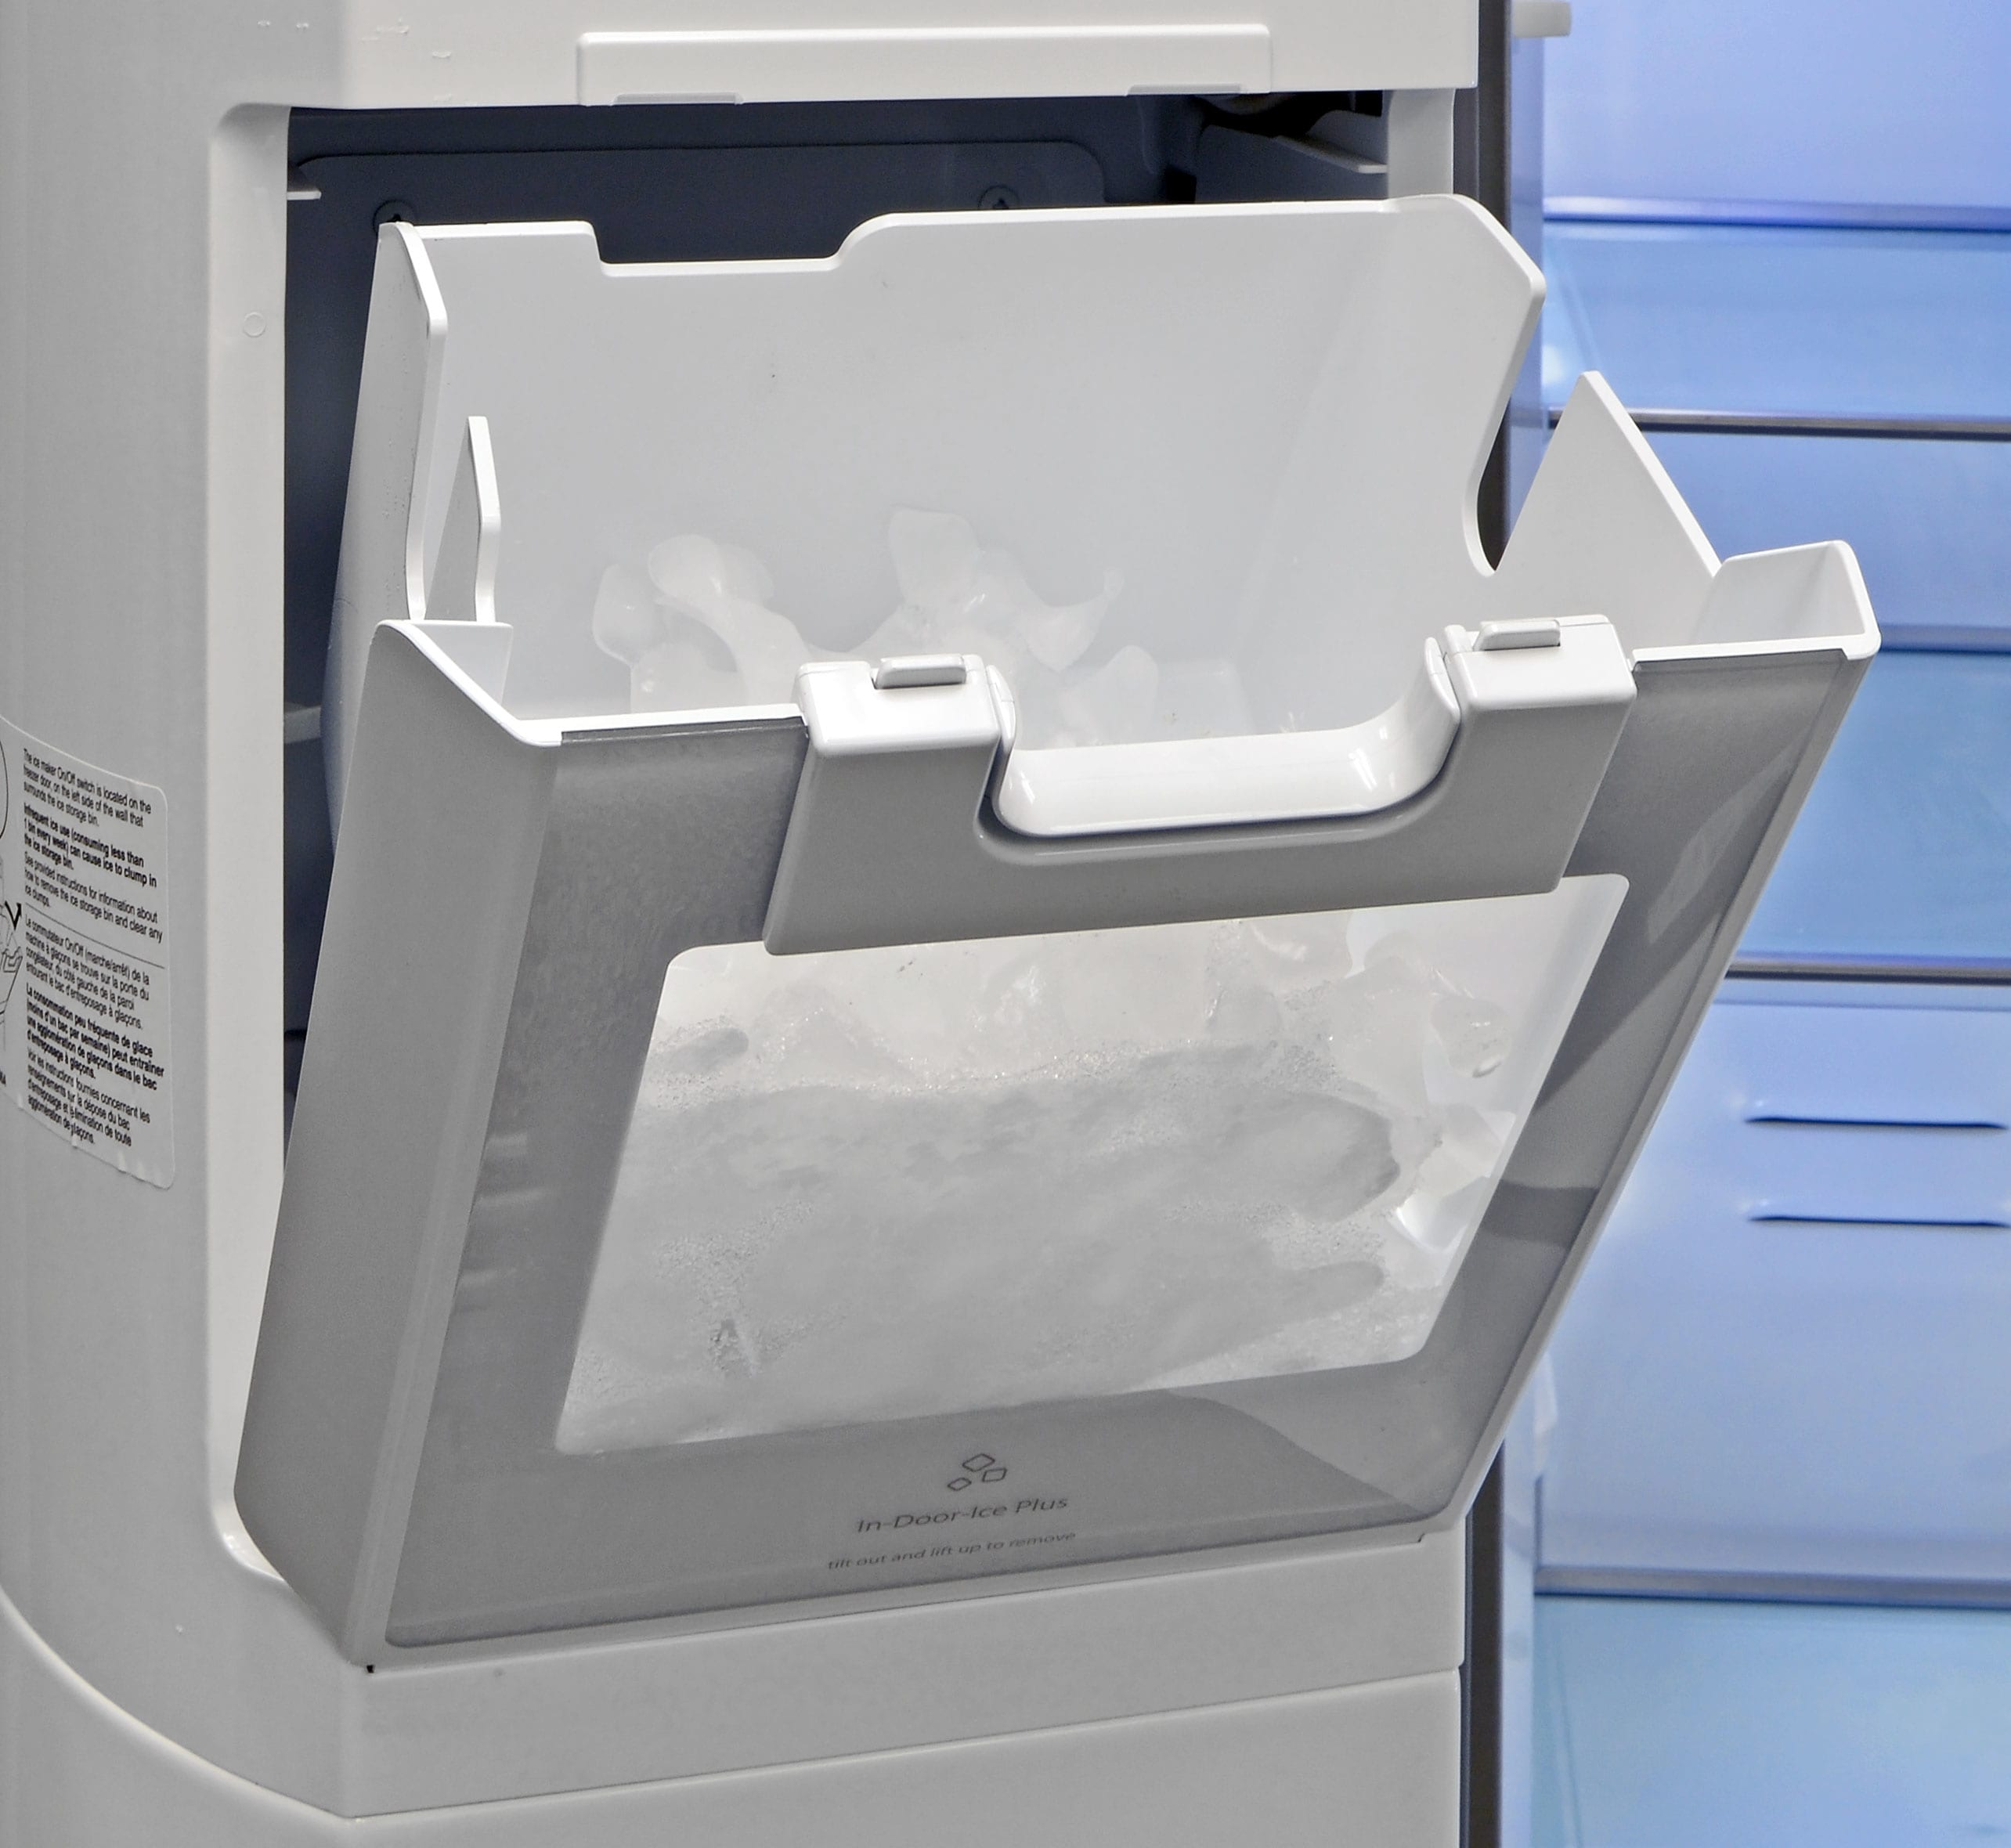 The Whirlpool WRS975SIDM's door-mounted ice maker is both accessible and large enough to hold plenty of cubes.